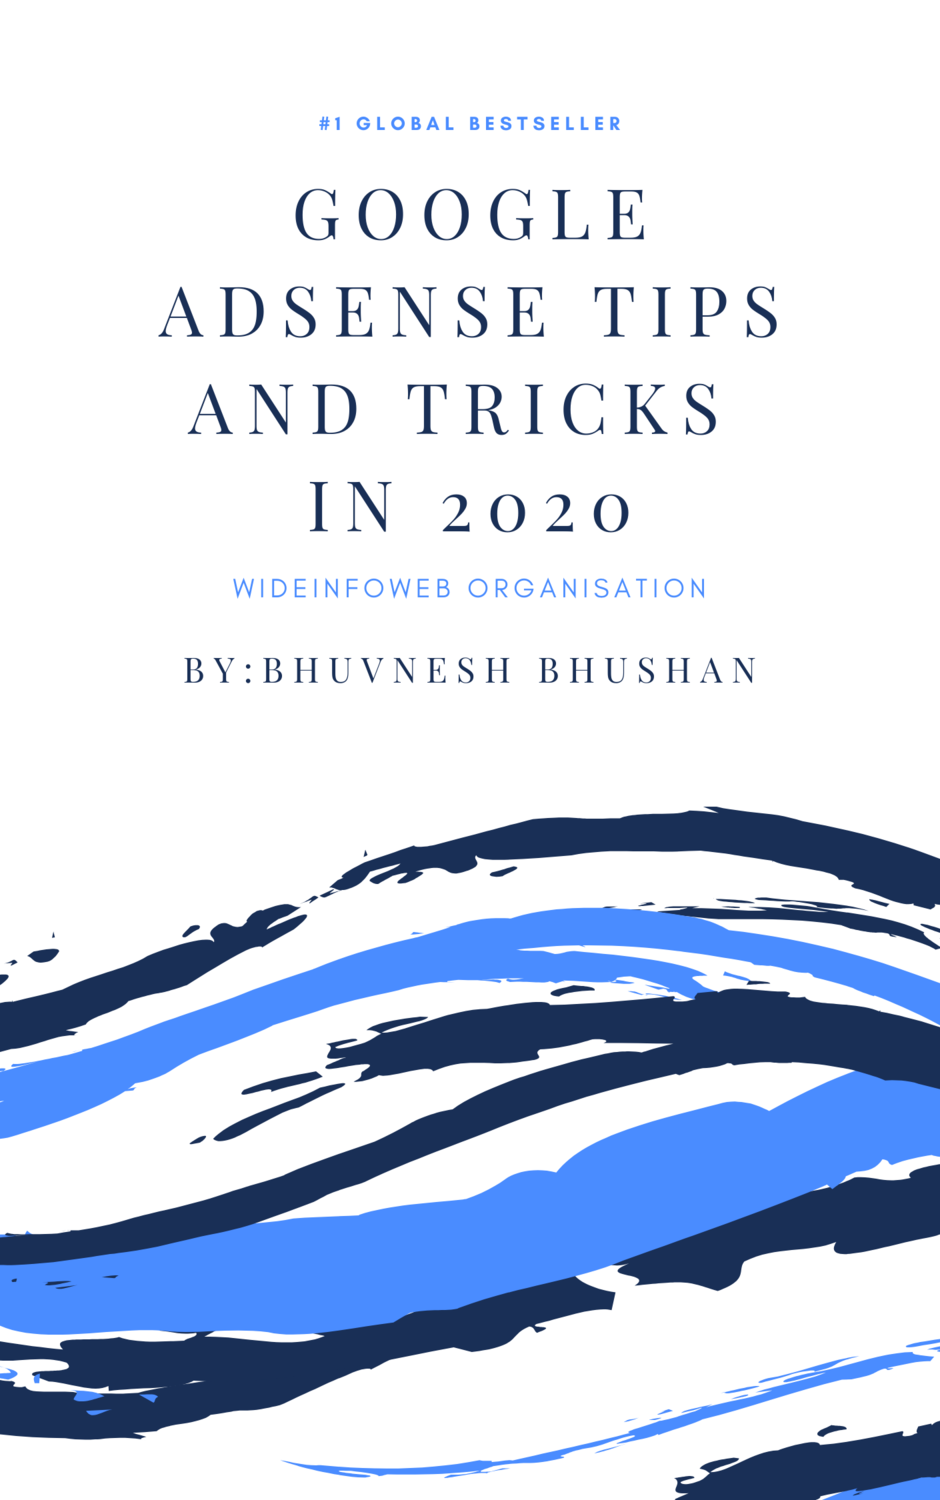 Google adsense tips and tricks in 2020